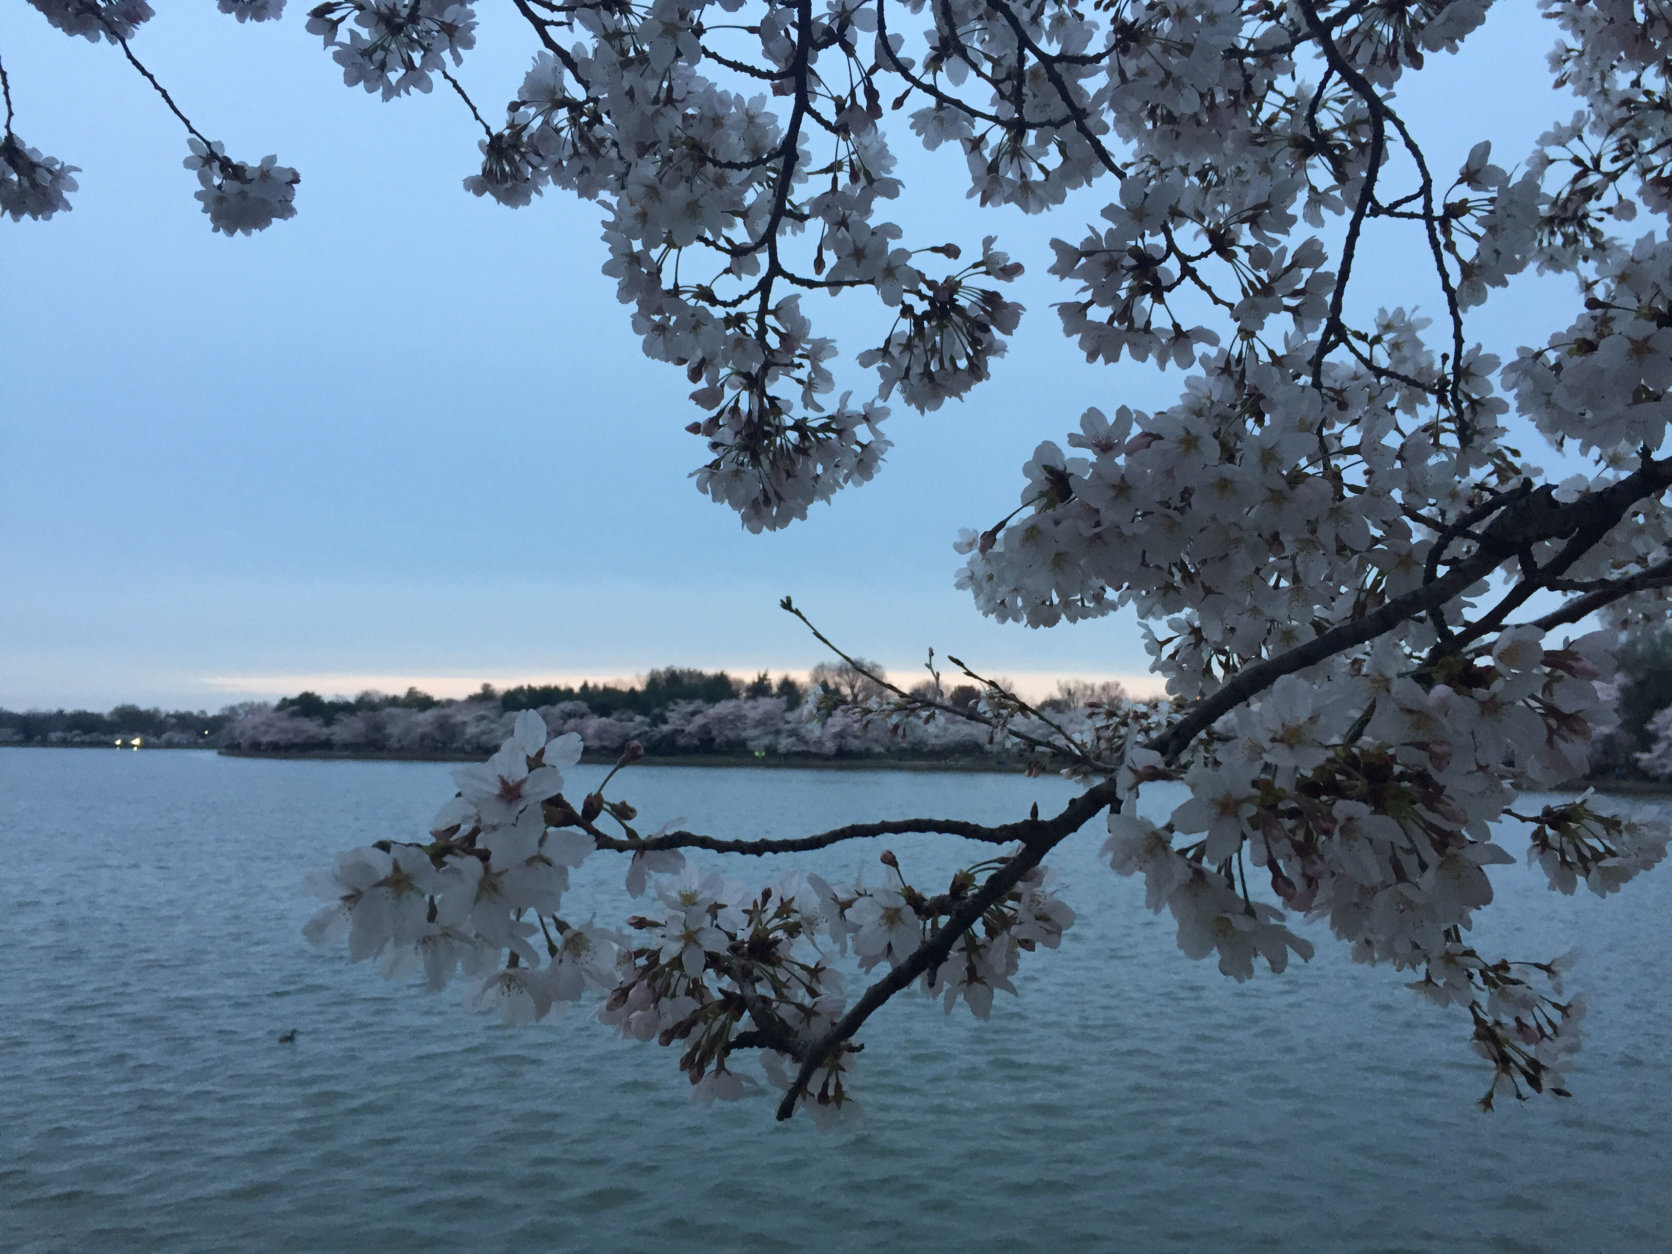 It's best to get to the Tidal Basin early to see the cherry blossoms. (WTOP/John Domen)